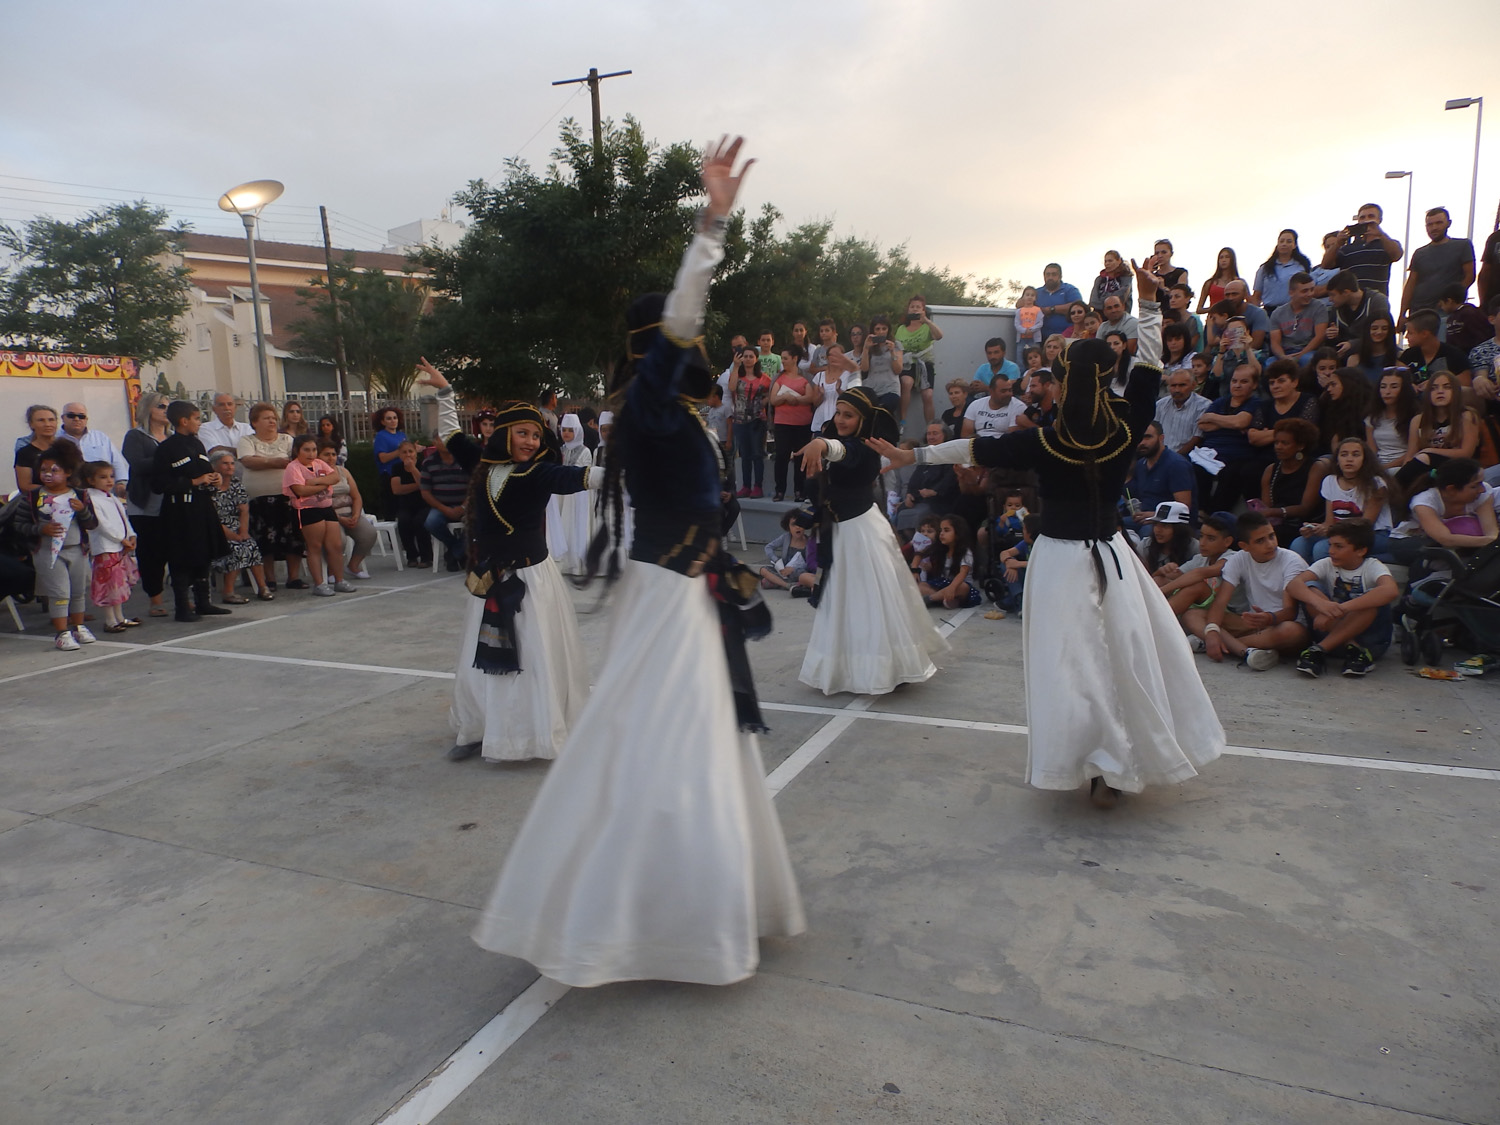 multicultural_Childrens_Festival_Ayios_Dhometios28516_26